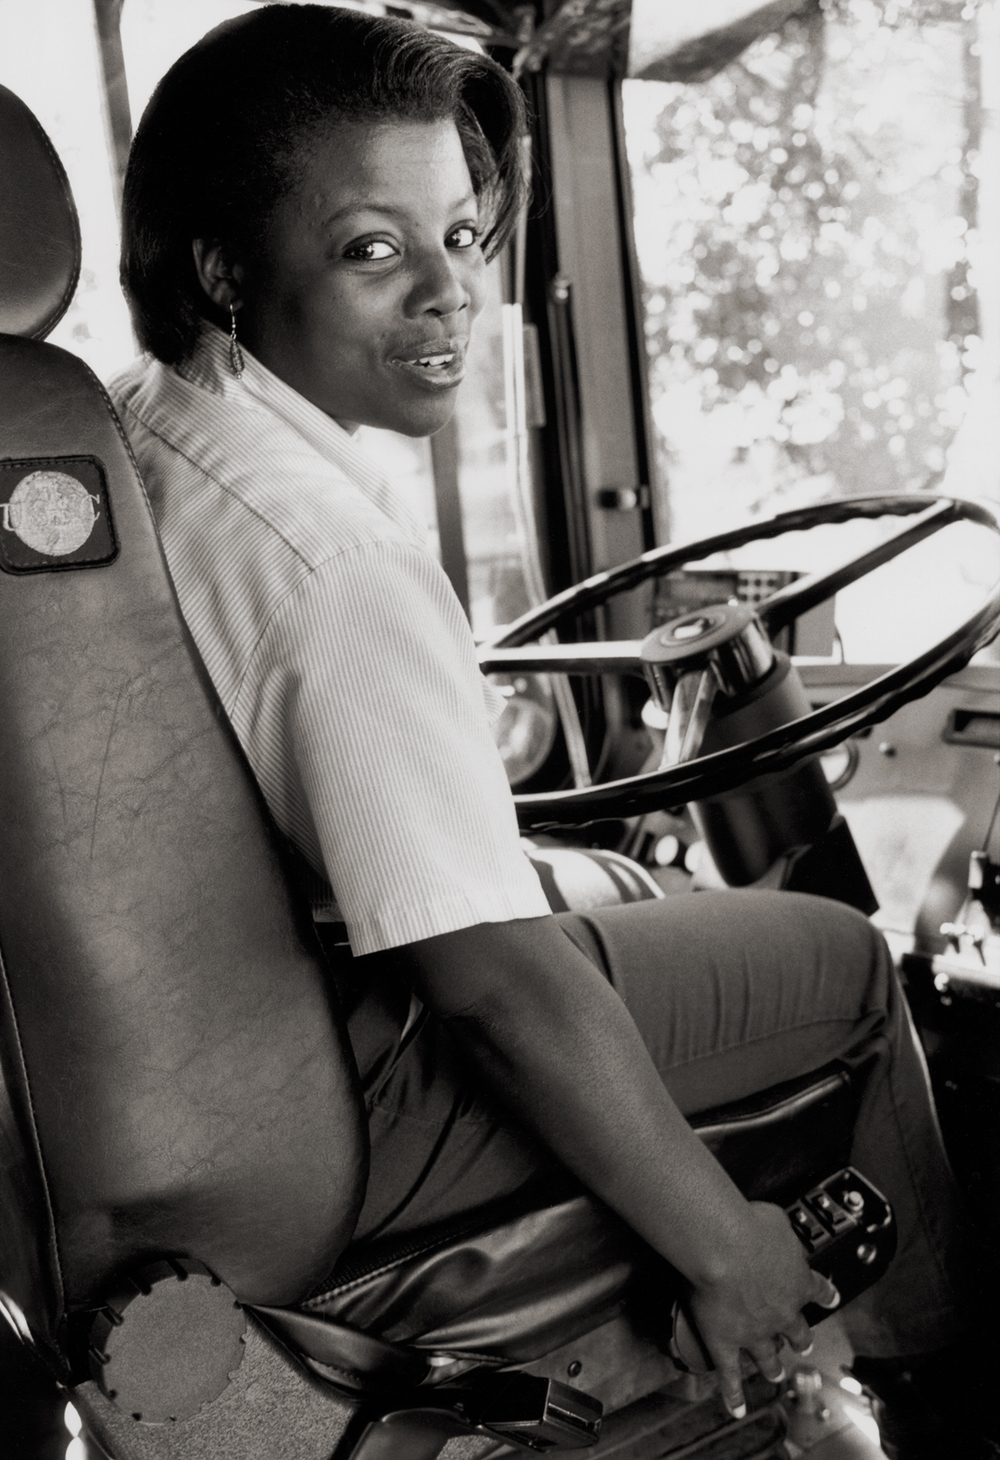 Bus driver for Community Transit, Key Links